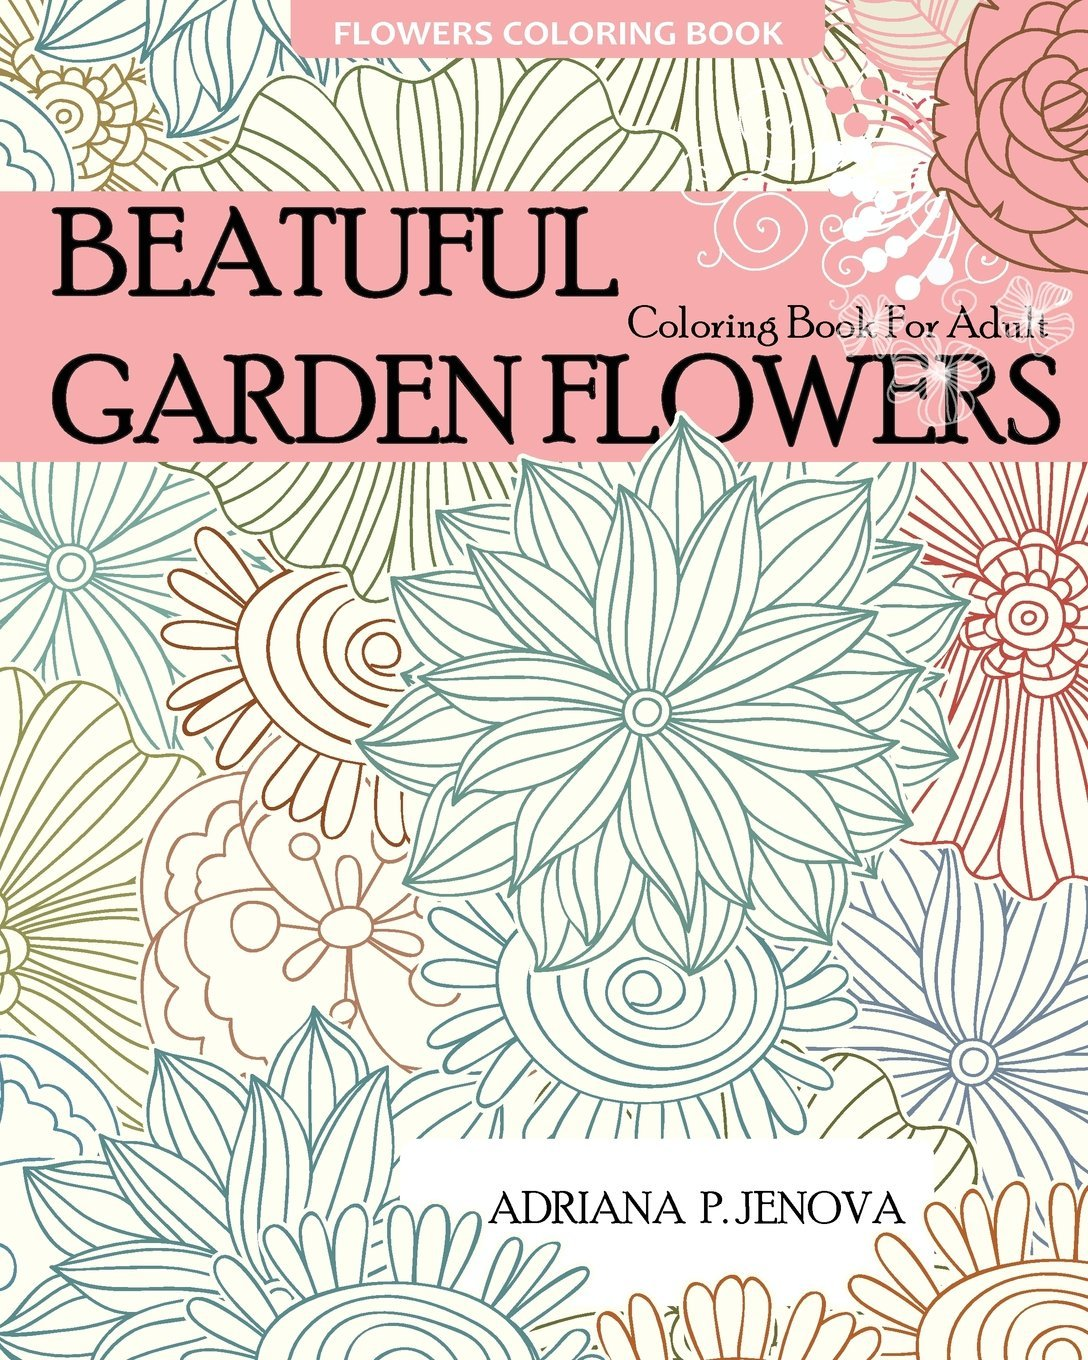 Flowers Coloring Book : Beautiful Garden Flowers Coloring Book For Adult Adriana P. Jenova